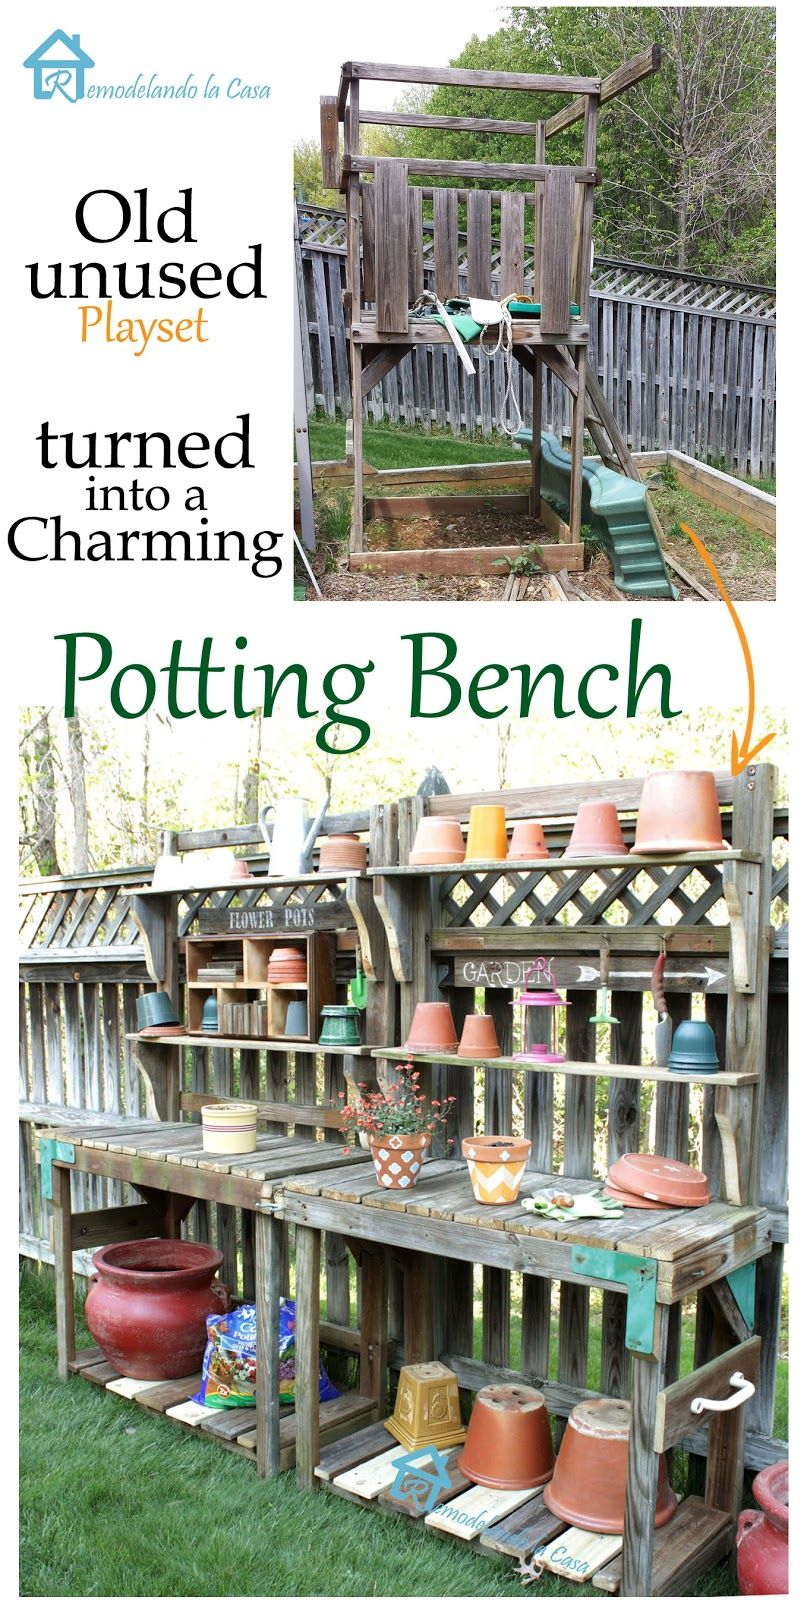 Repurposing a playset into a potting bench bench gardens and yards